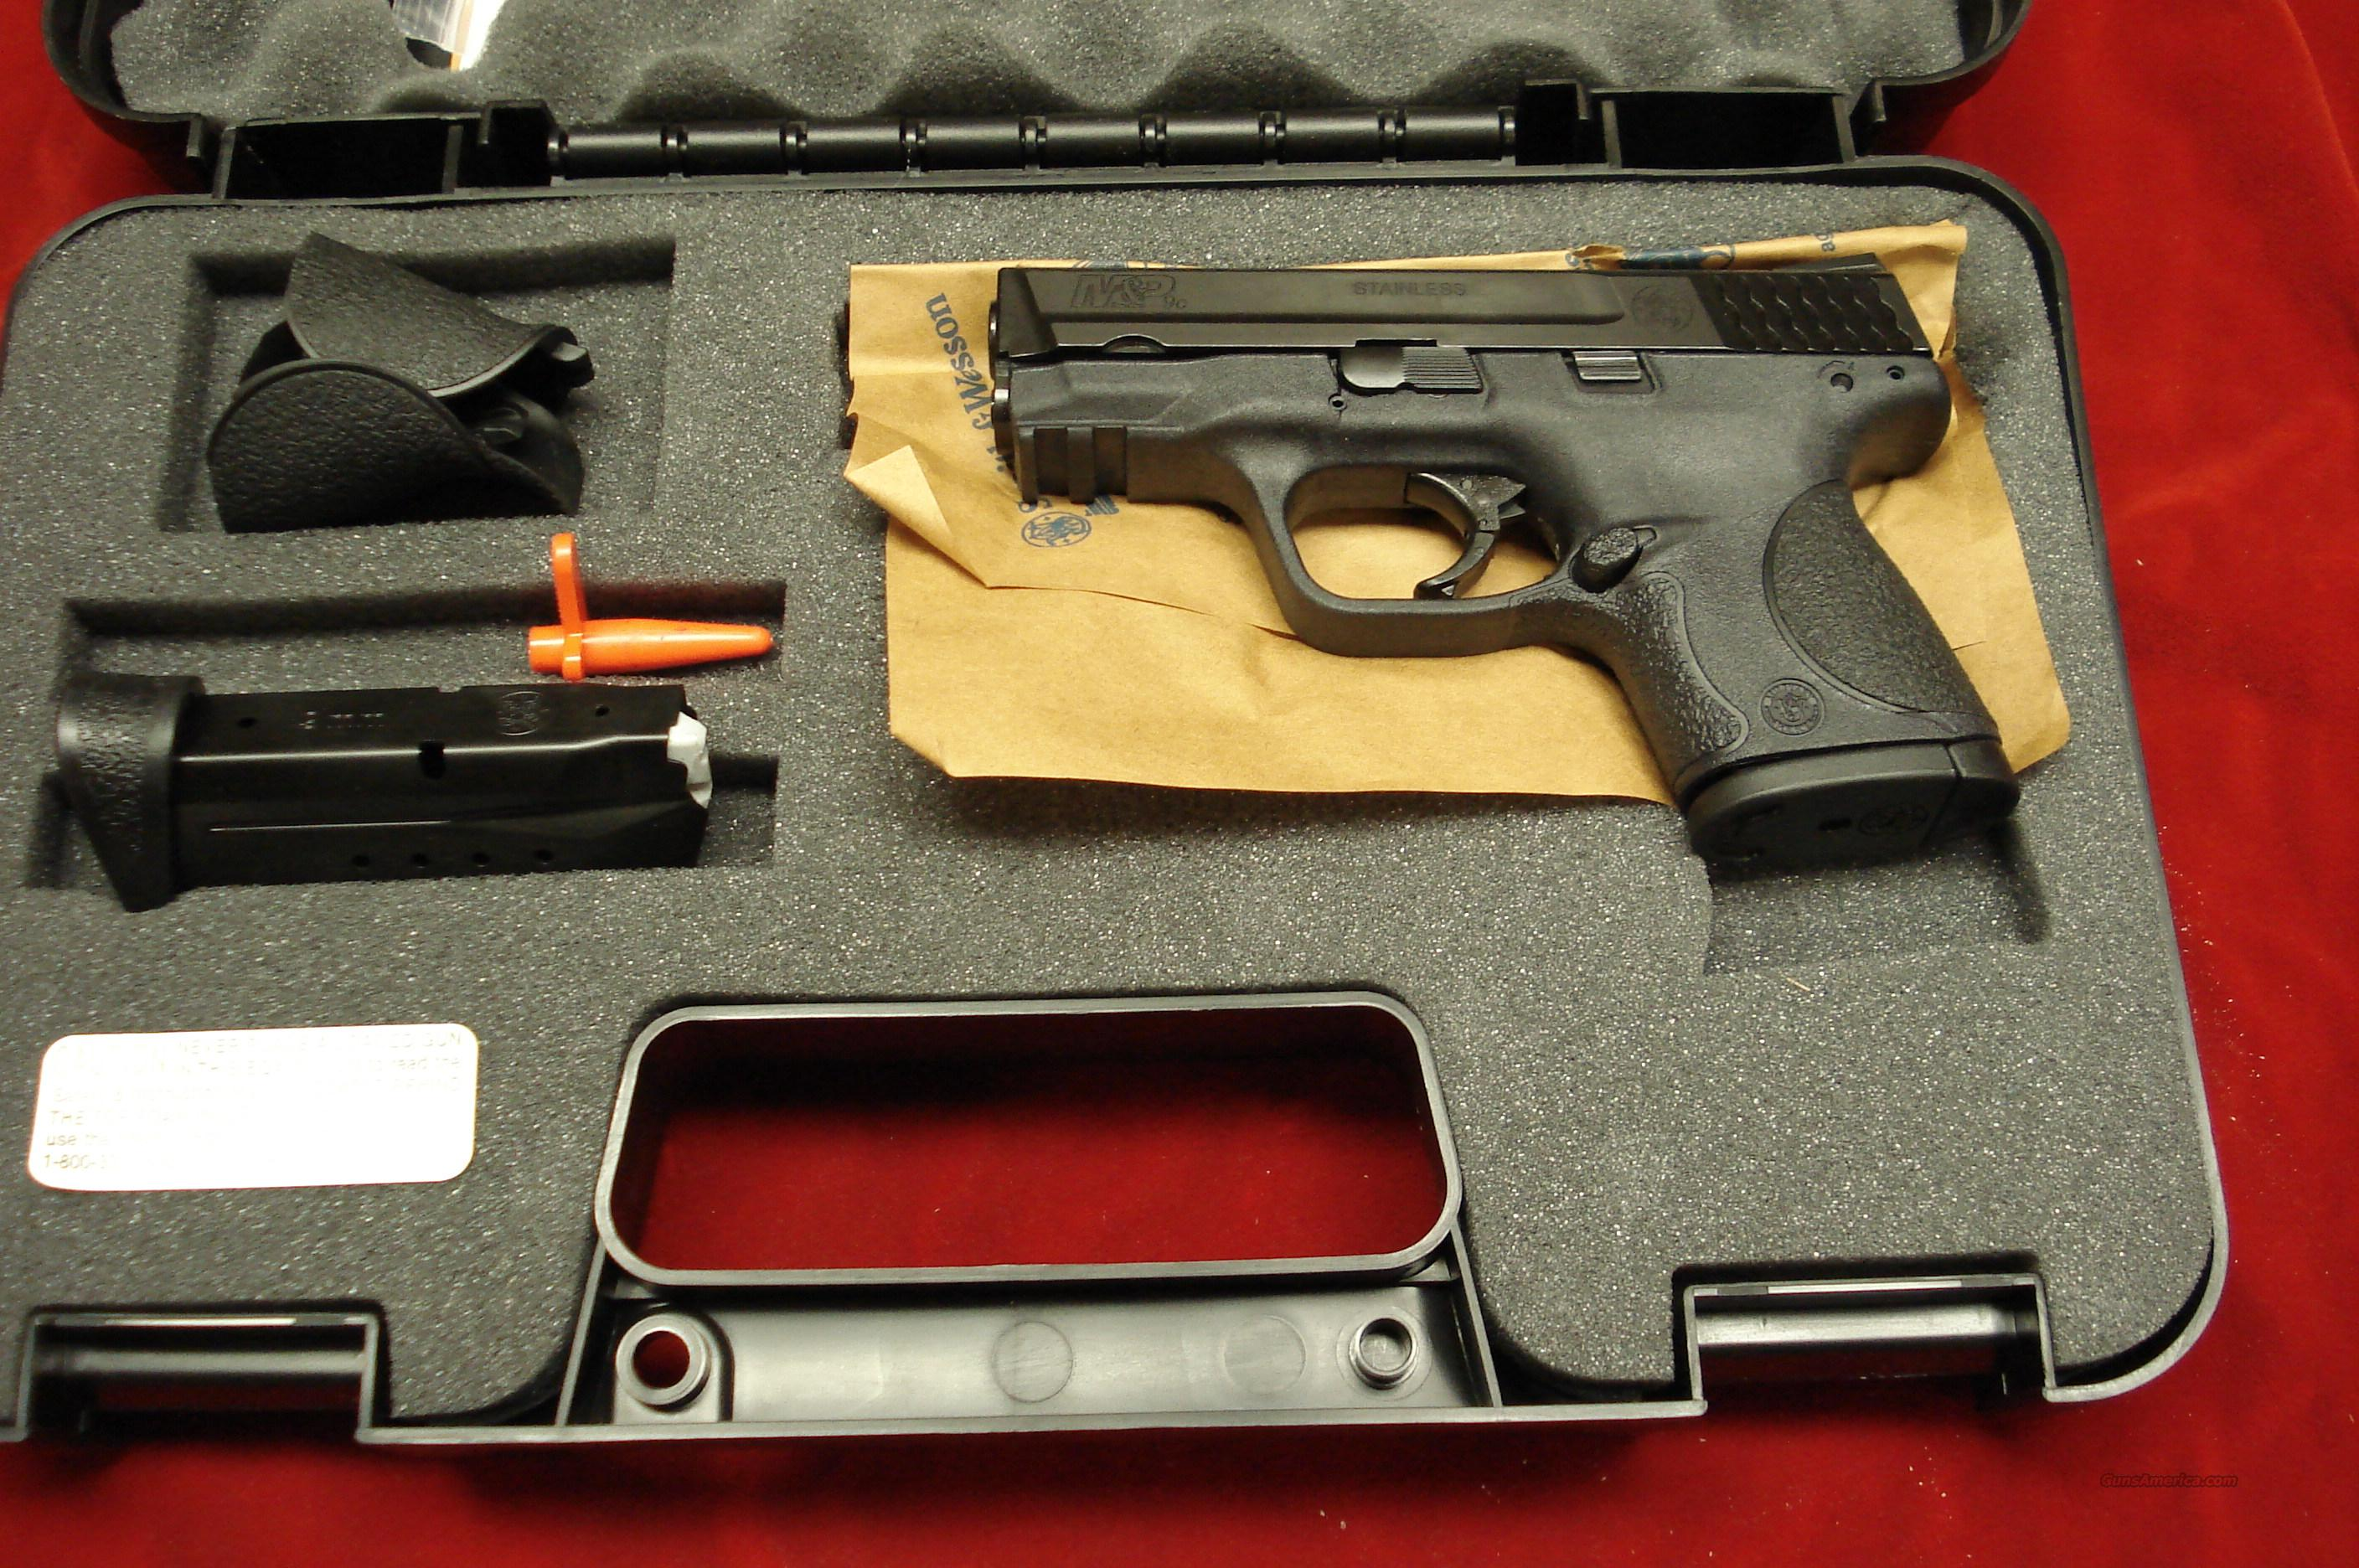 SMITH AND WESSON M&P COMPACT 9MM NEW    Guns > Pistols > Smith & Wesson Pistols - Autos > Polymer Frame